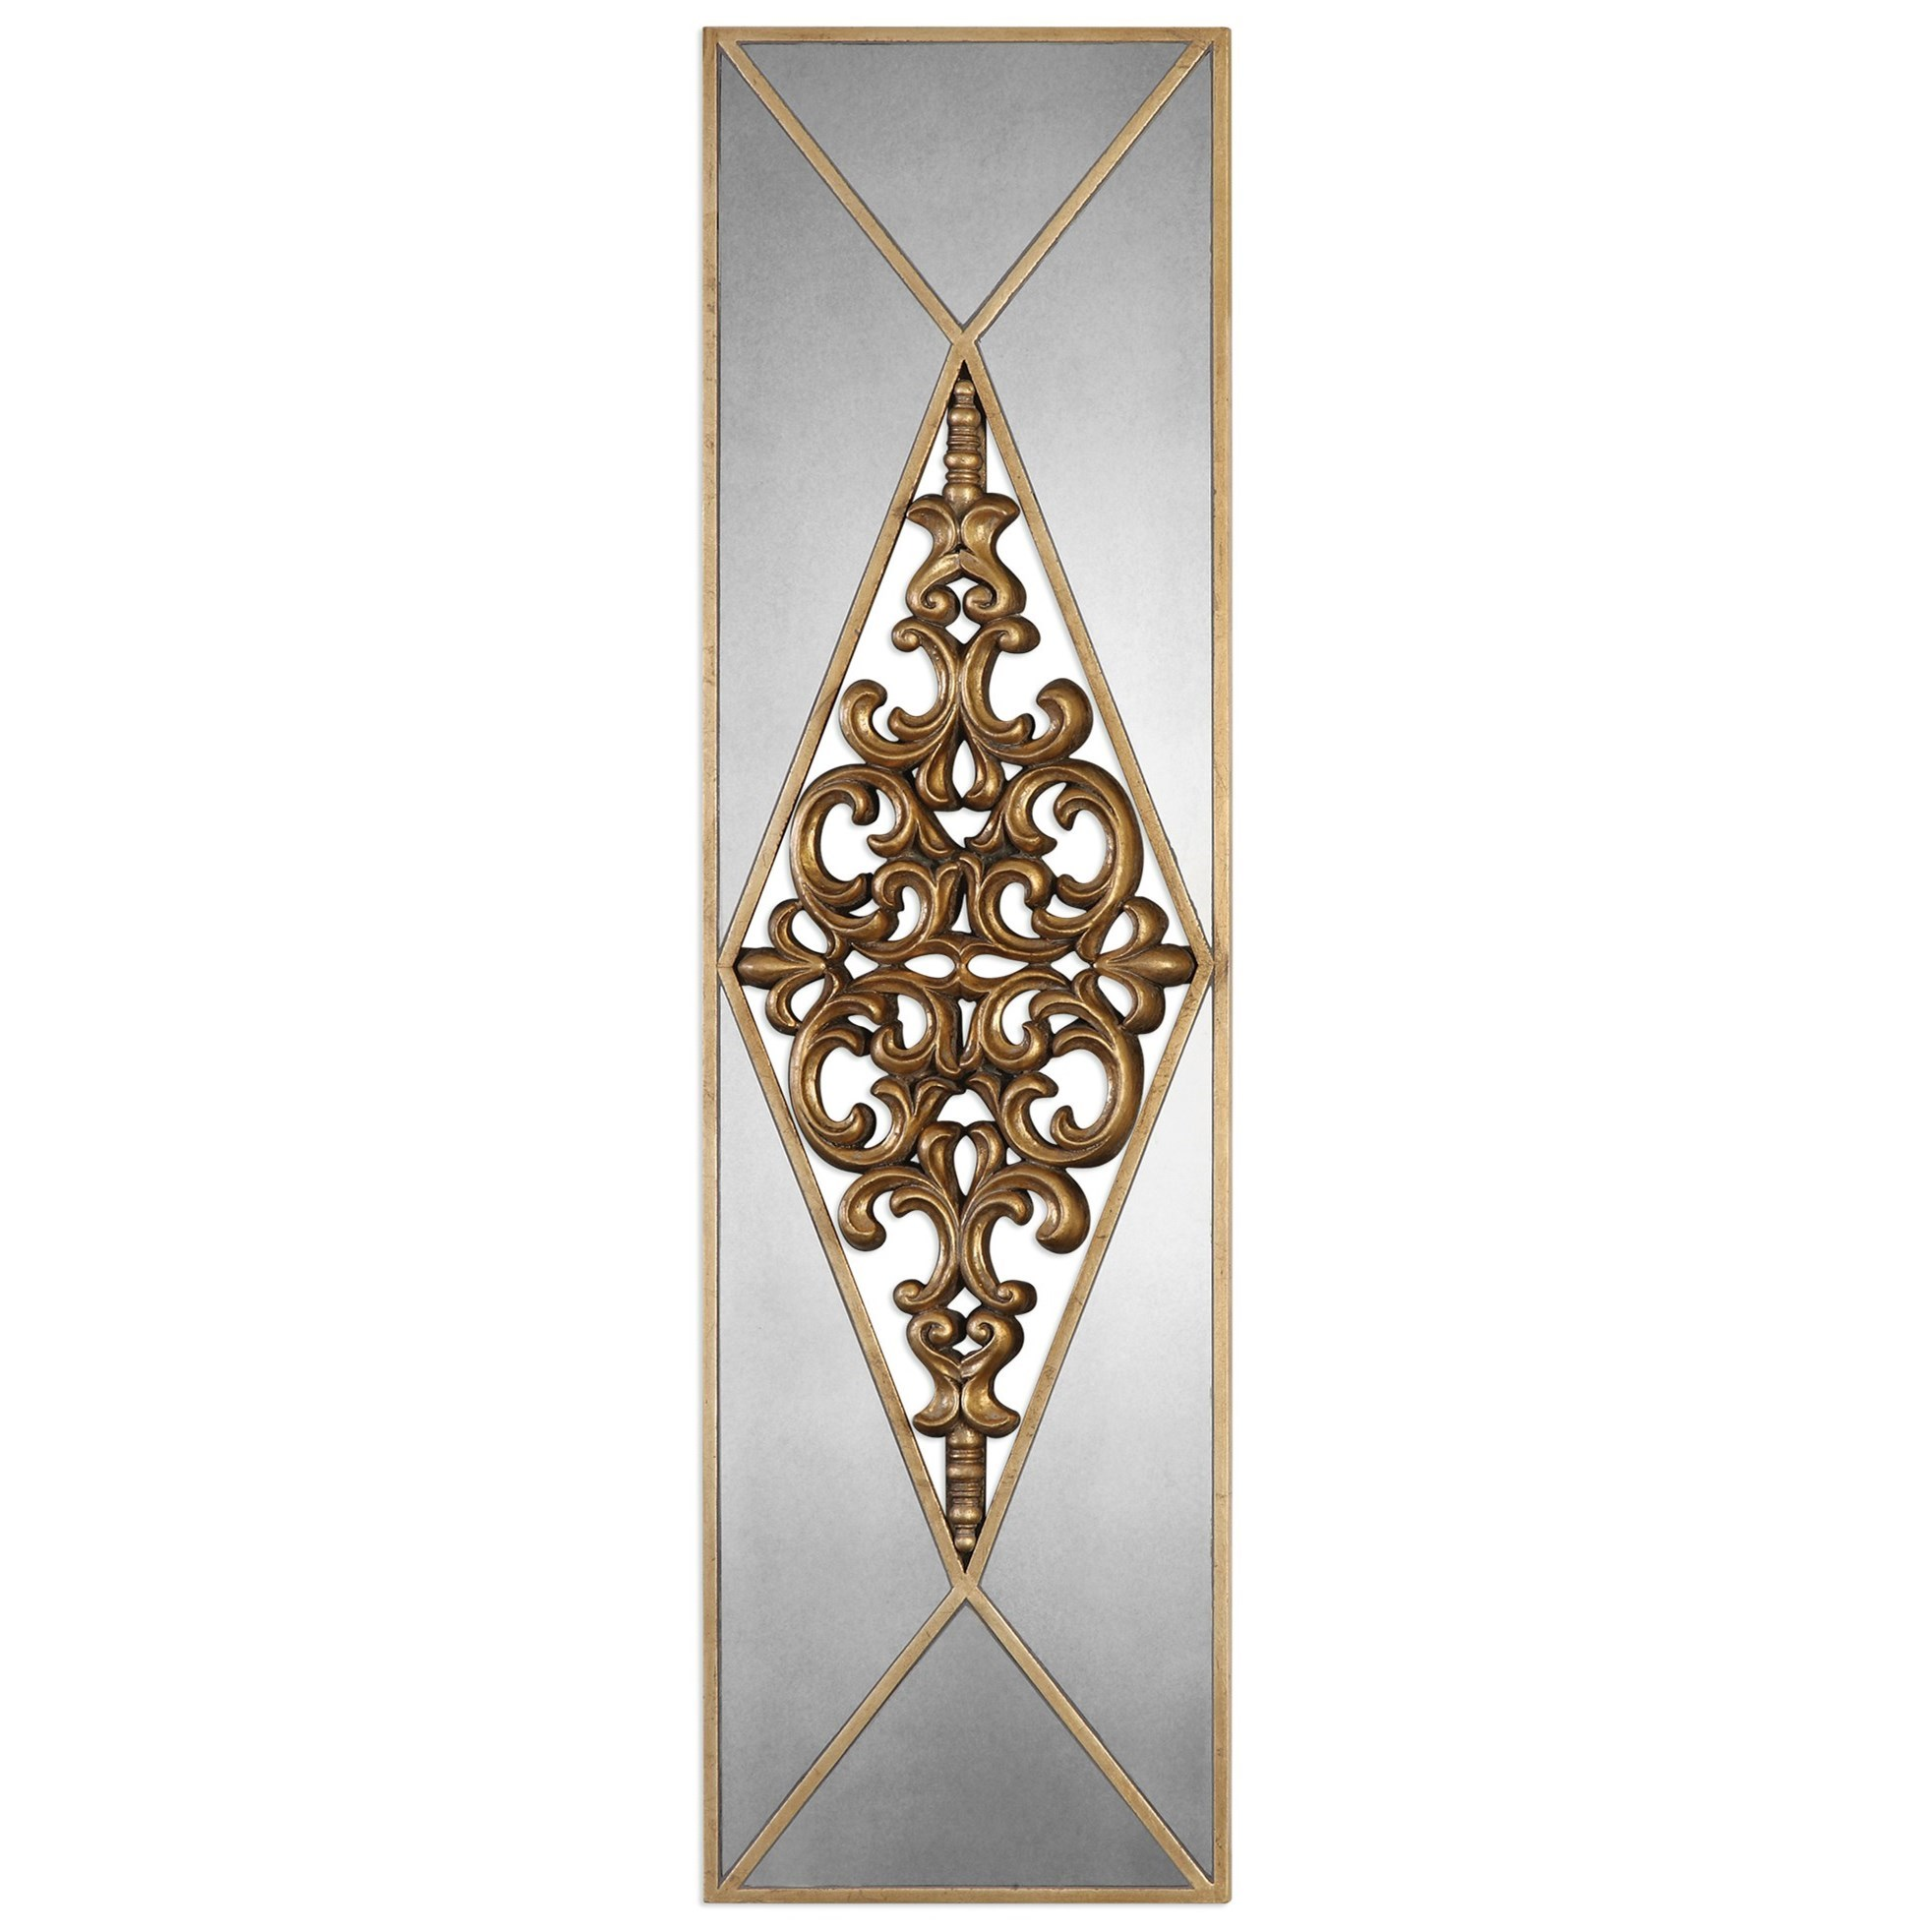 Uttermost Alternative Wall Decor  Serrano Mirrored Wall Art - Item Number: 04065